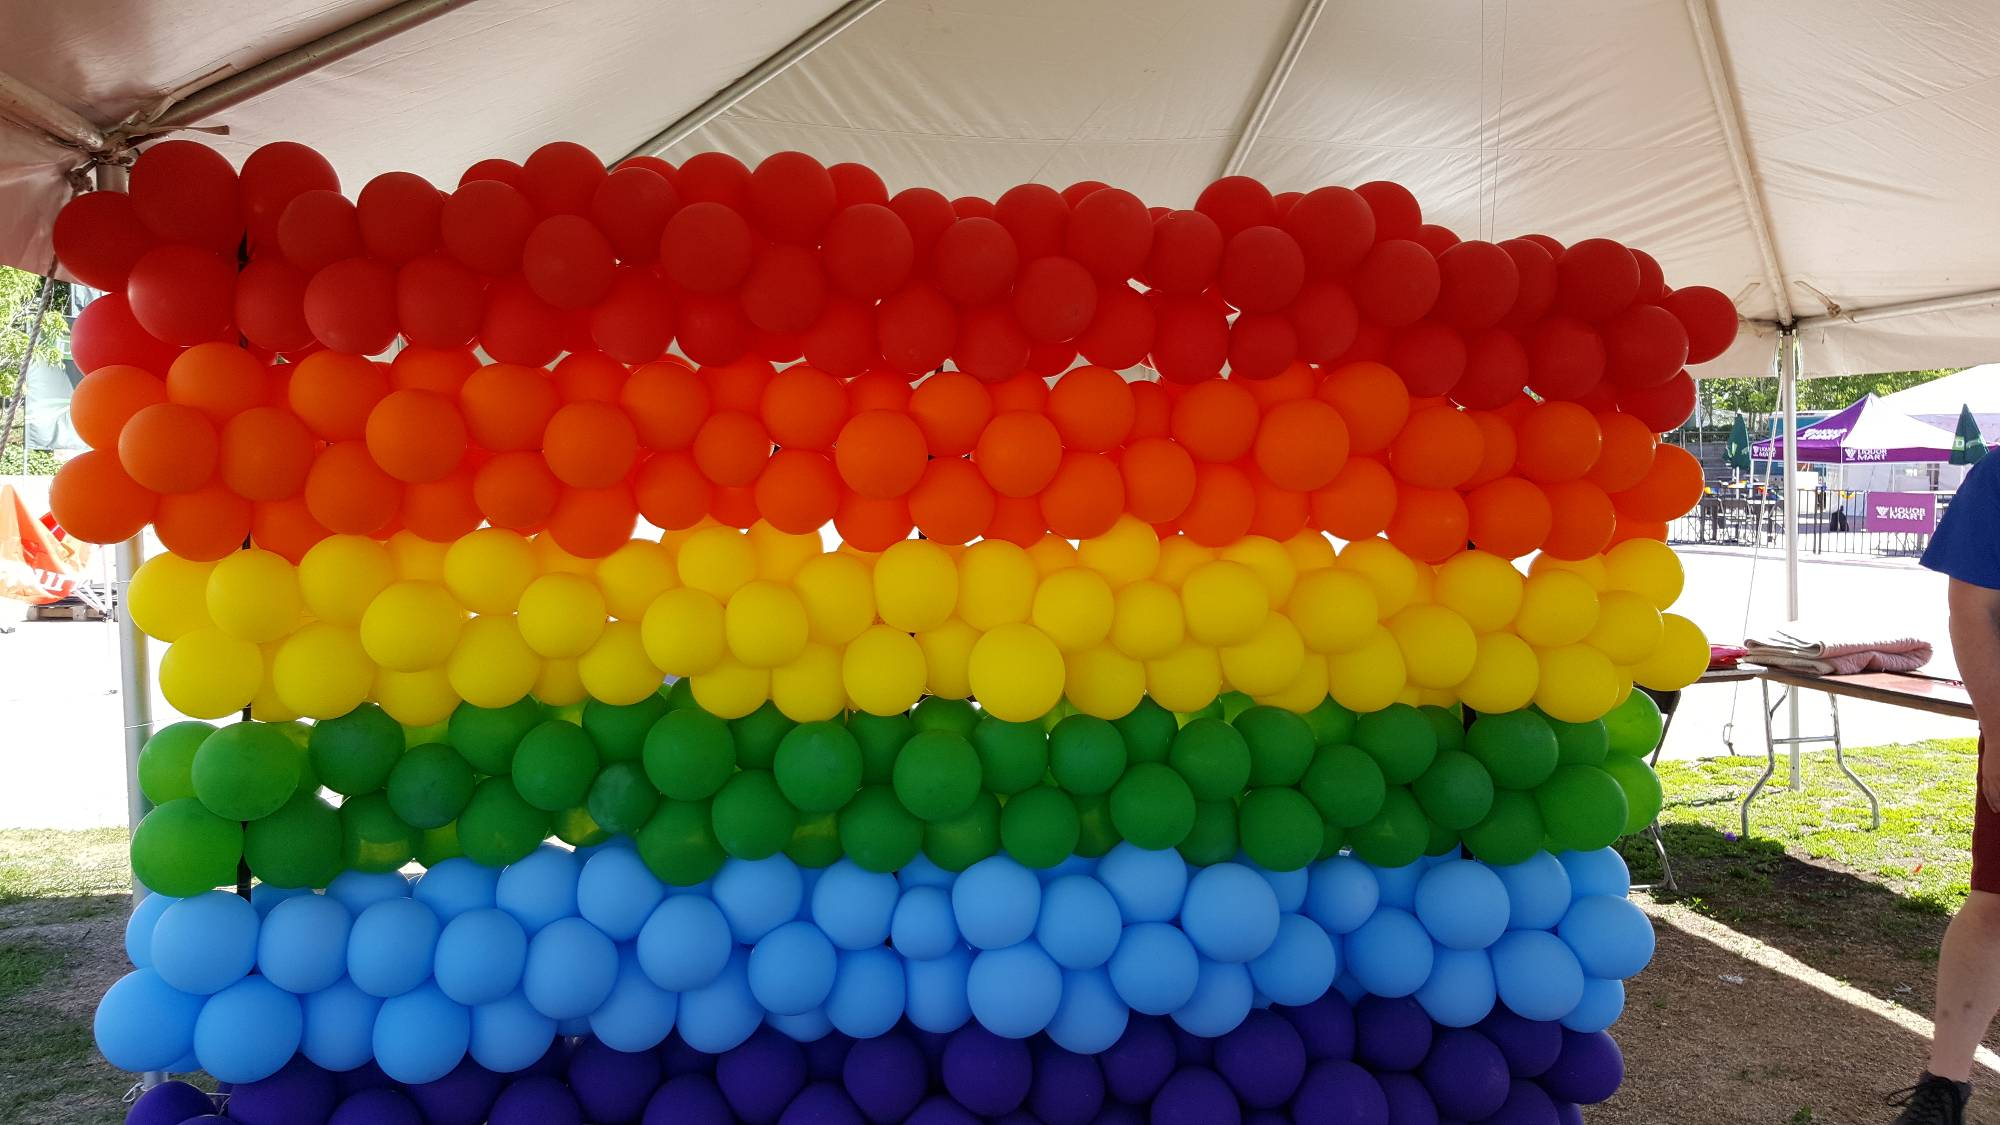 LGBTQ Rainbow Wall by Balloon Empire